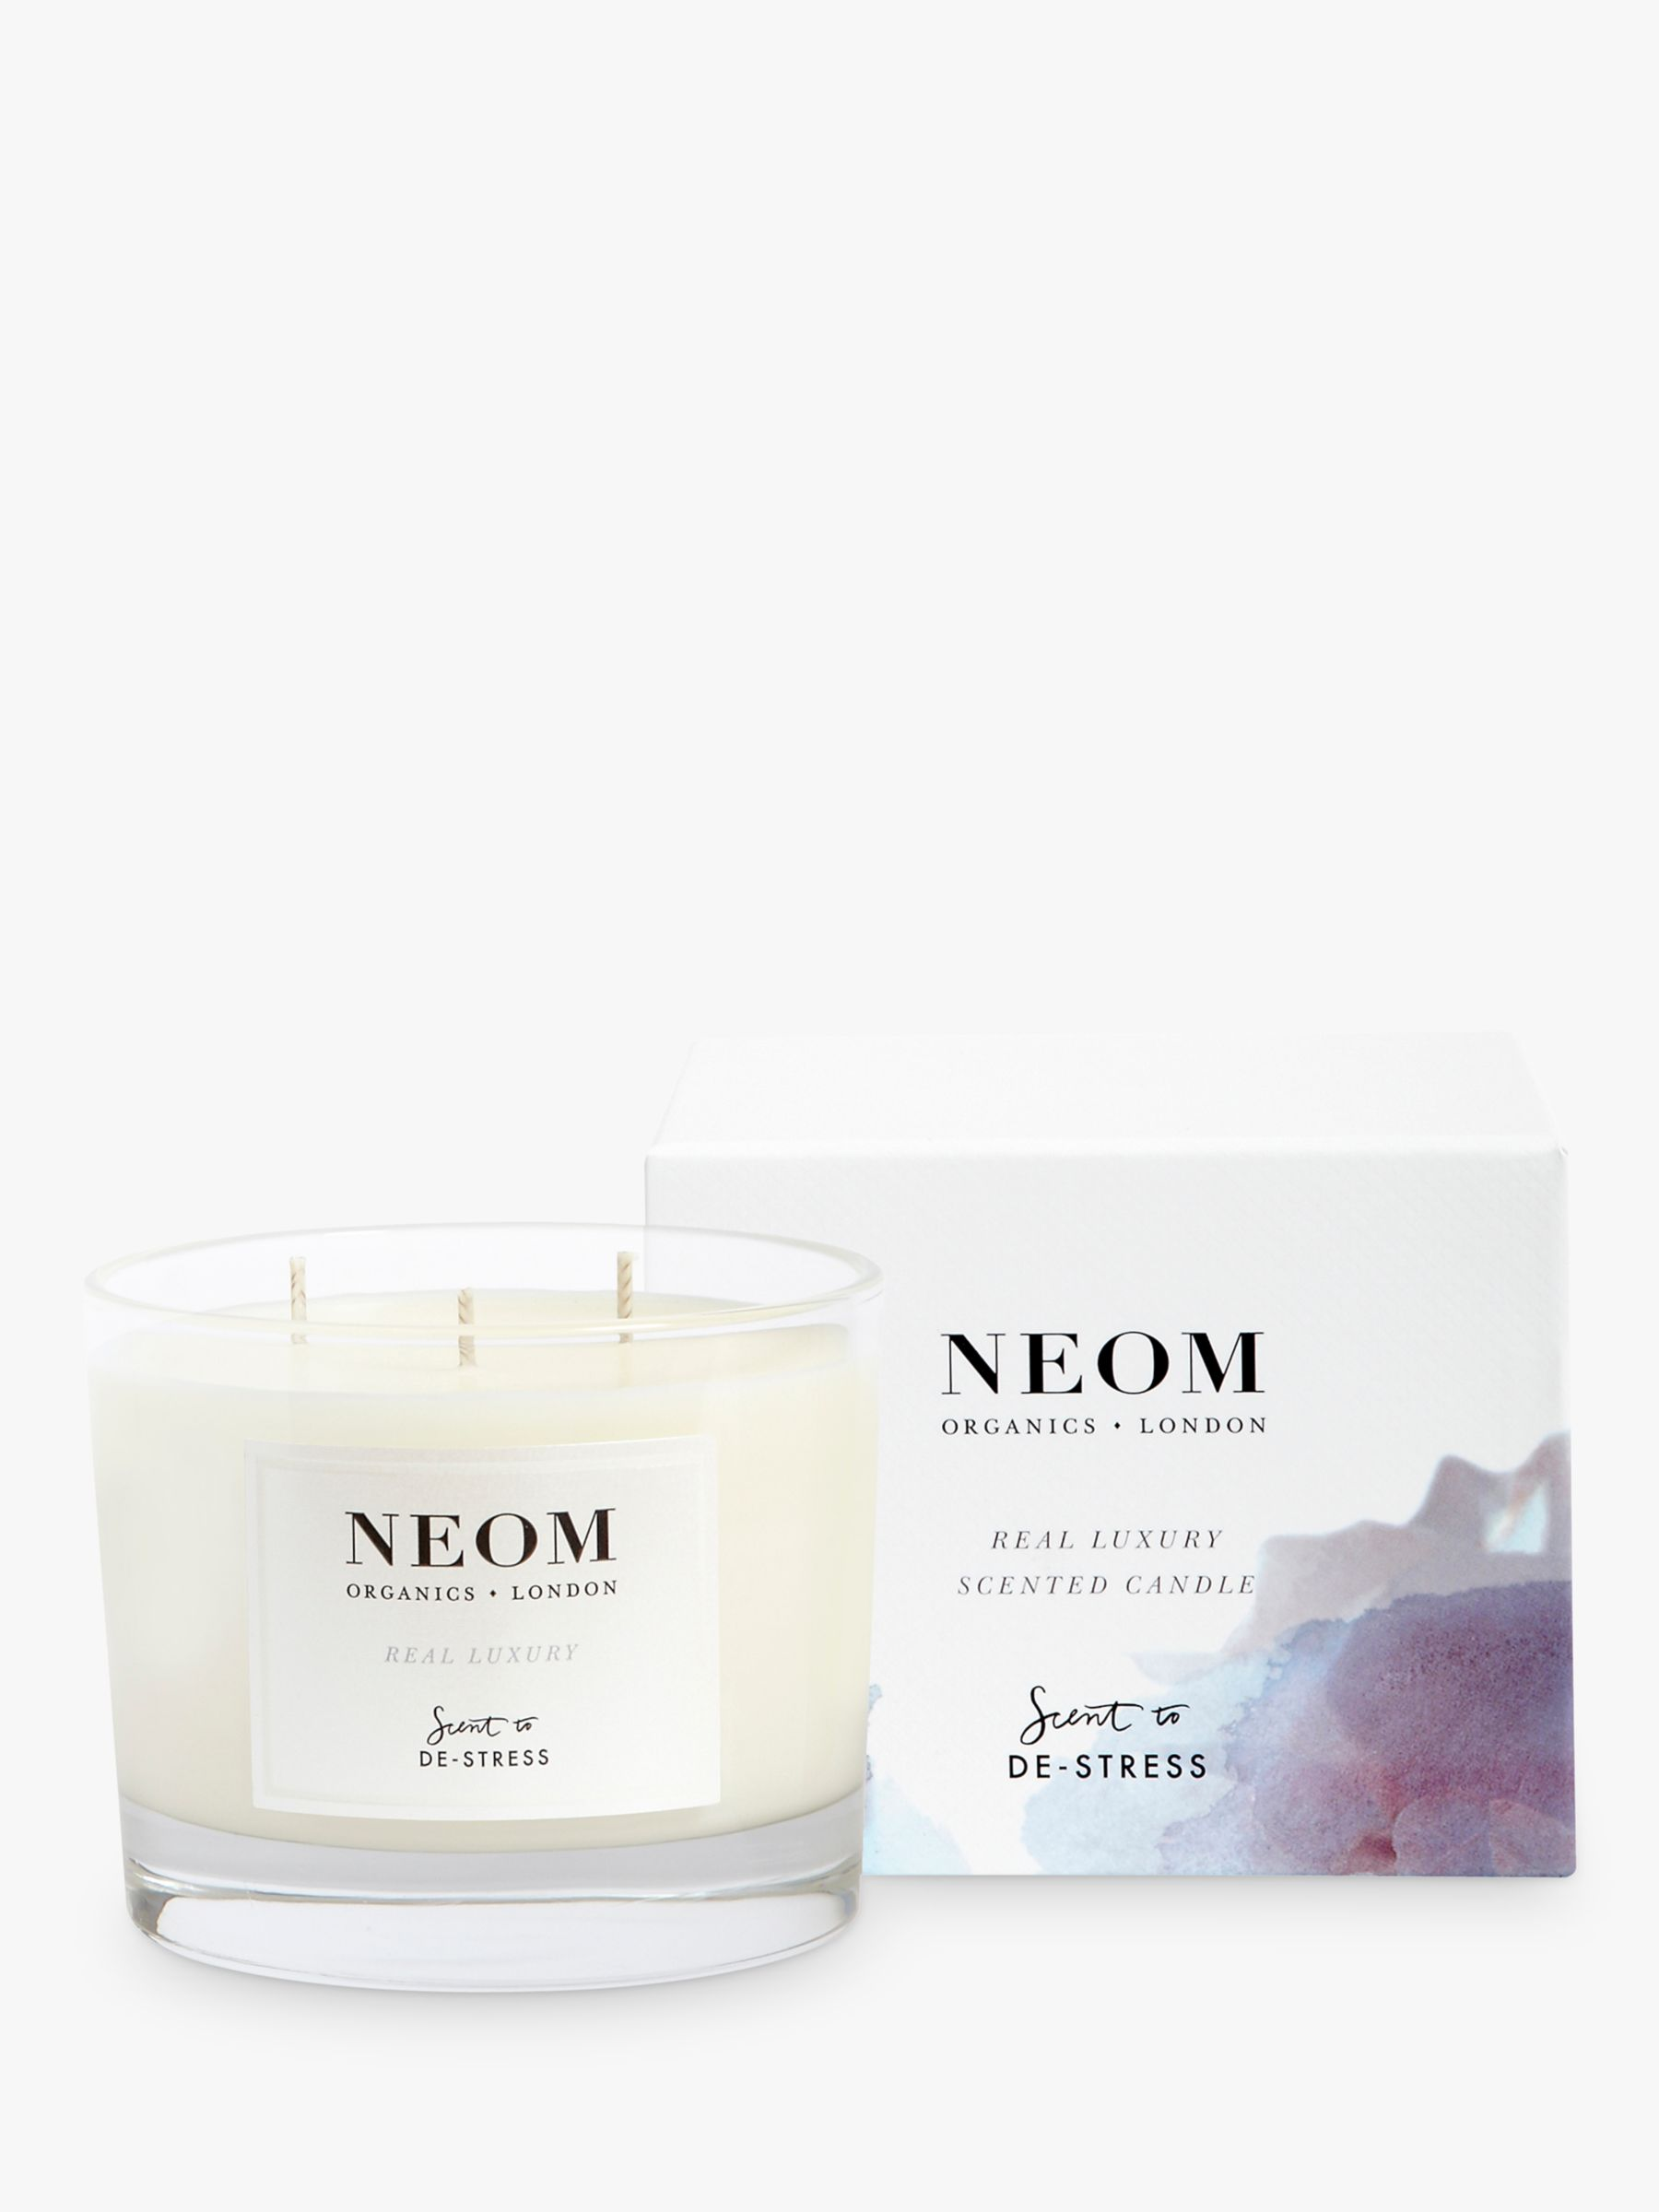 Neom Neom Real Luxury 3 Wick Candle, 420g